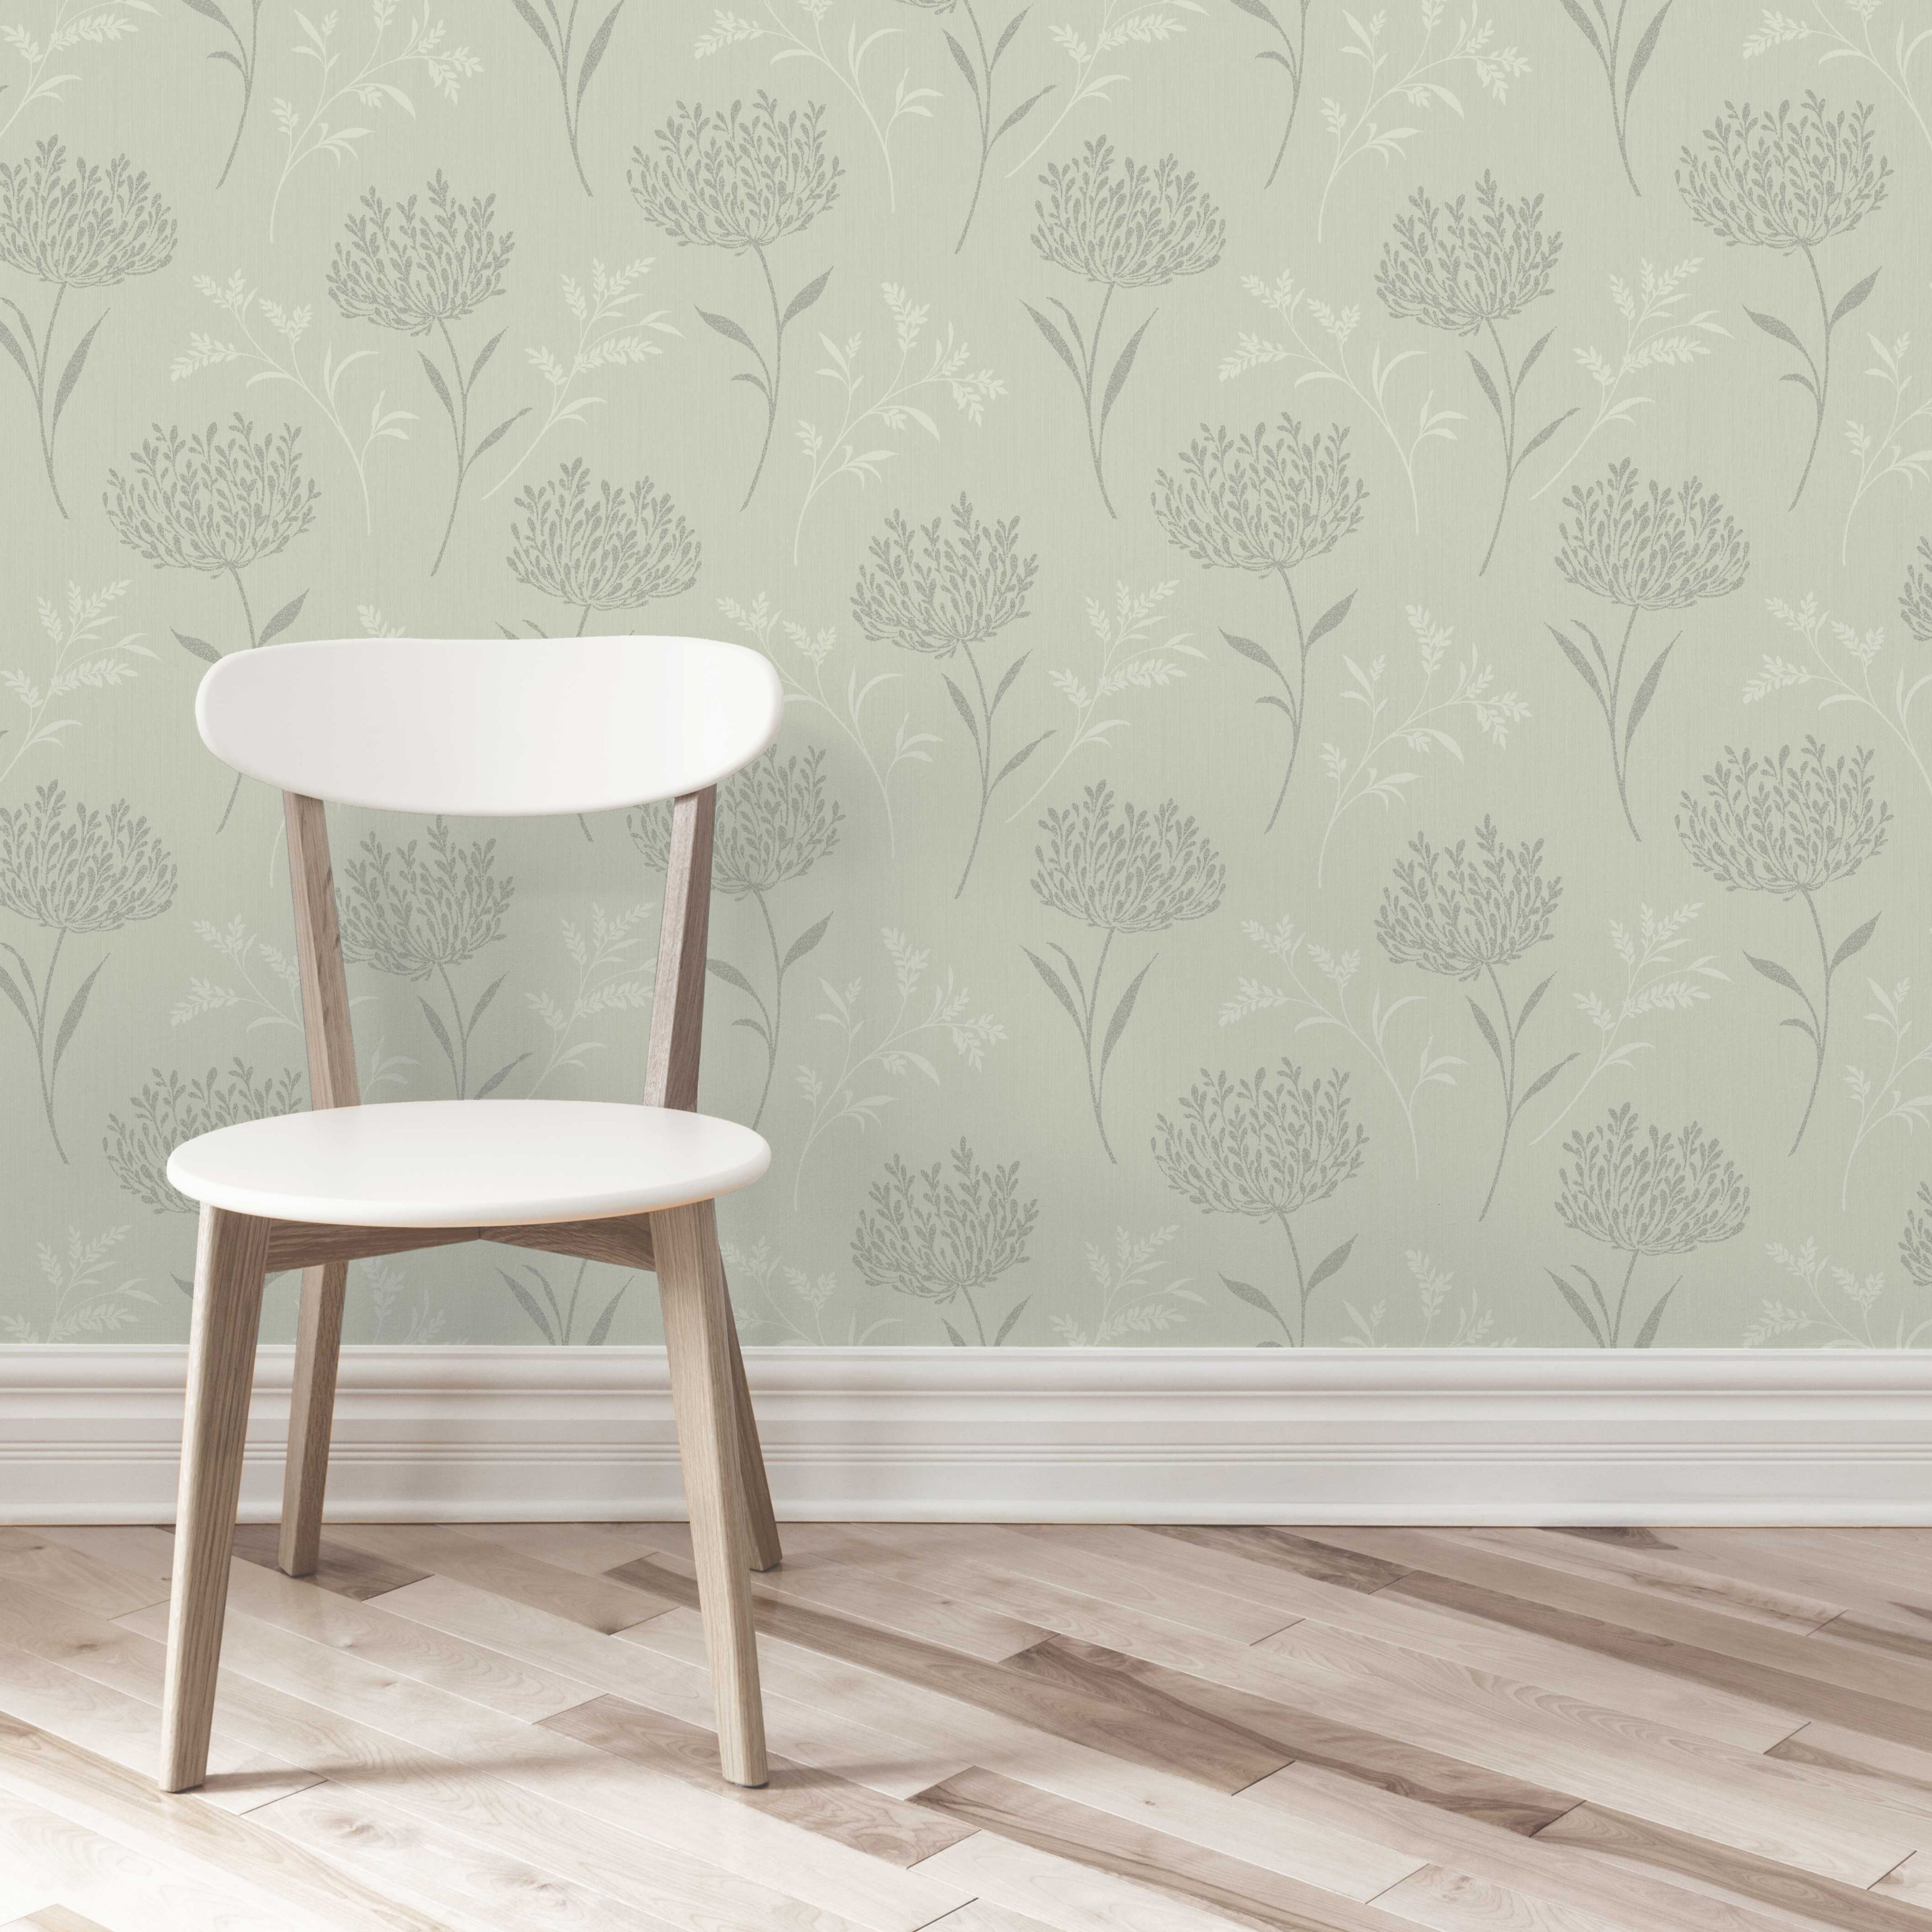 Agapanthus Green Floral Glitter Effect Wallpaper | Departments | DIY at B&Q